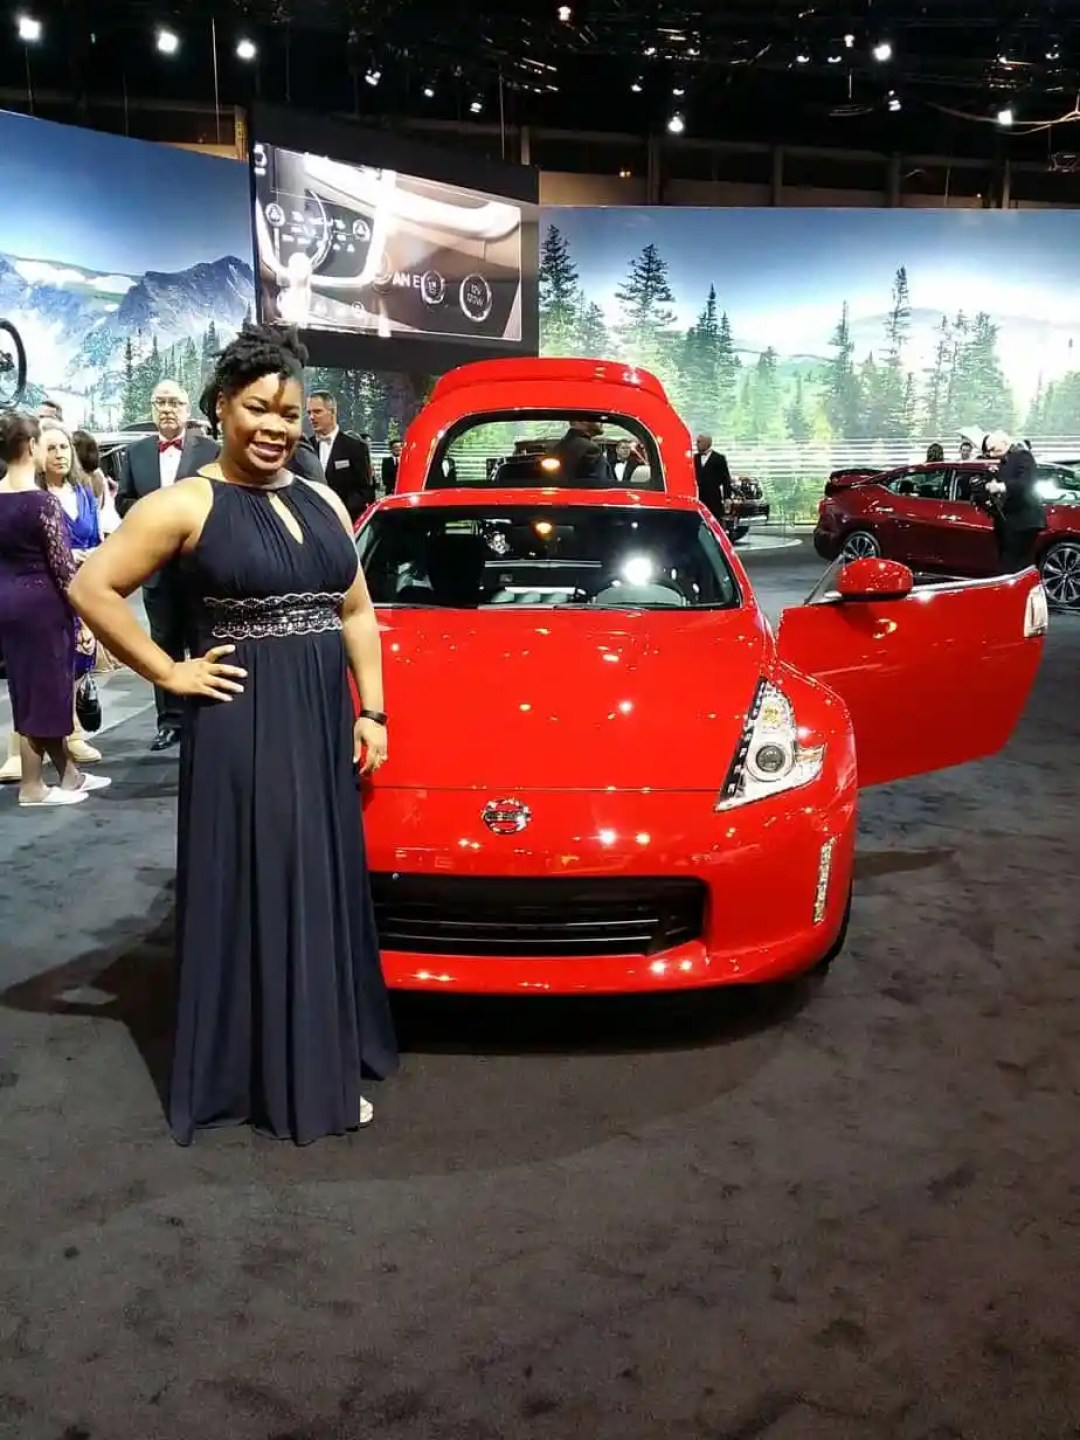 Chicago Auto Show - First Look for Charity